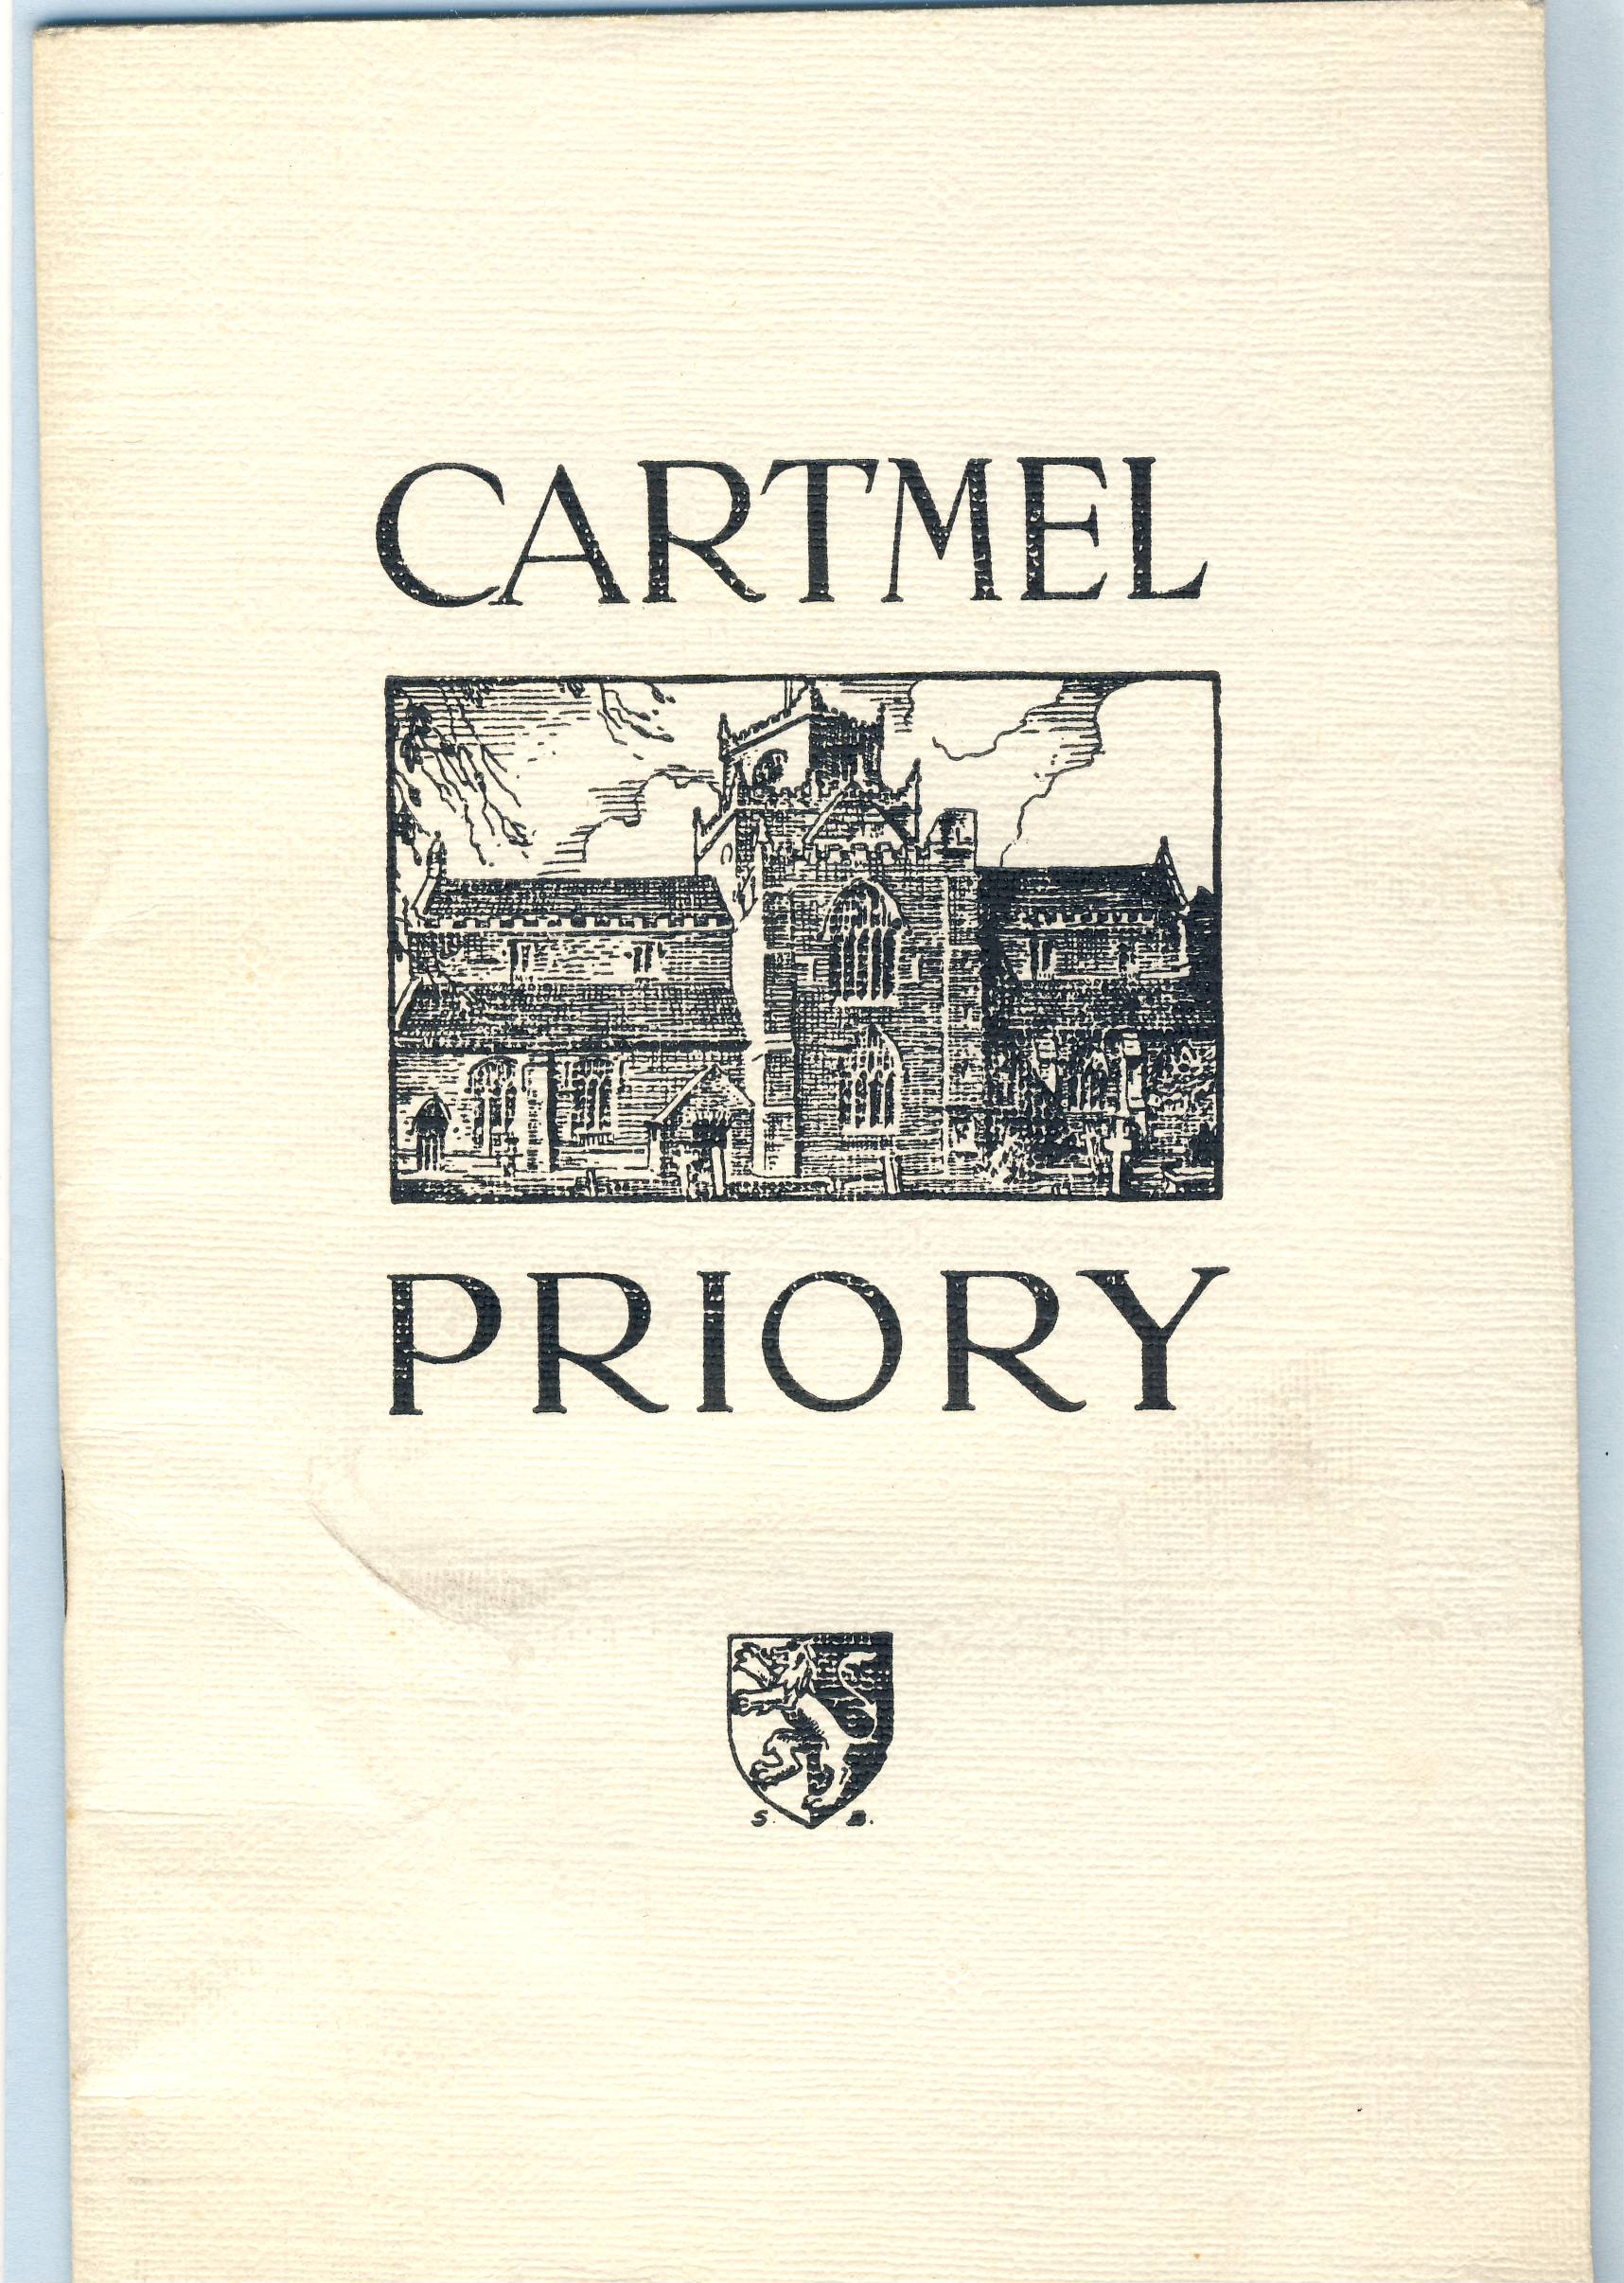 CARTMEL PRIORY tourist brochure 1/- shilling booklet refS5 About the Priory Church of St. Mary and St. Michael Cartmel by the Rev. L.G.F. Dykes and T. Hardwick. Measures approx 14cm x 21cm - 16 pages - a pre-owned vintage item in good condition for age. Illustrations by S. Buckley.